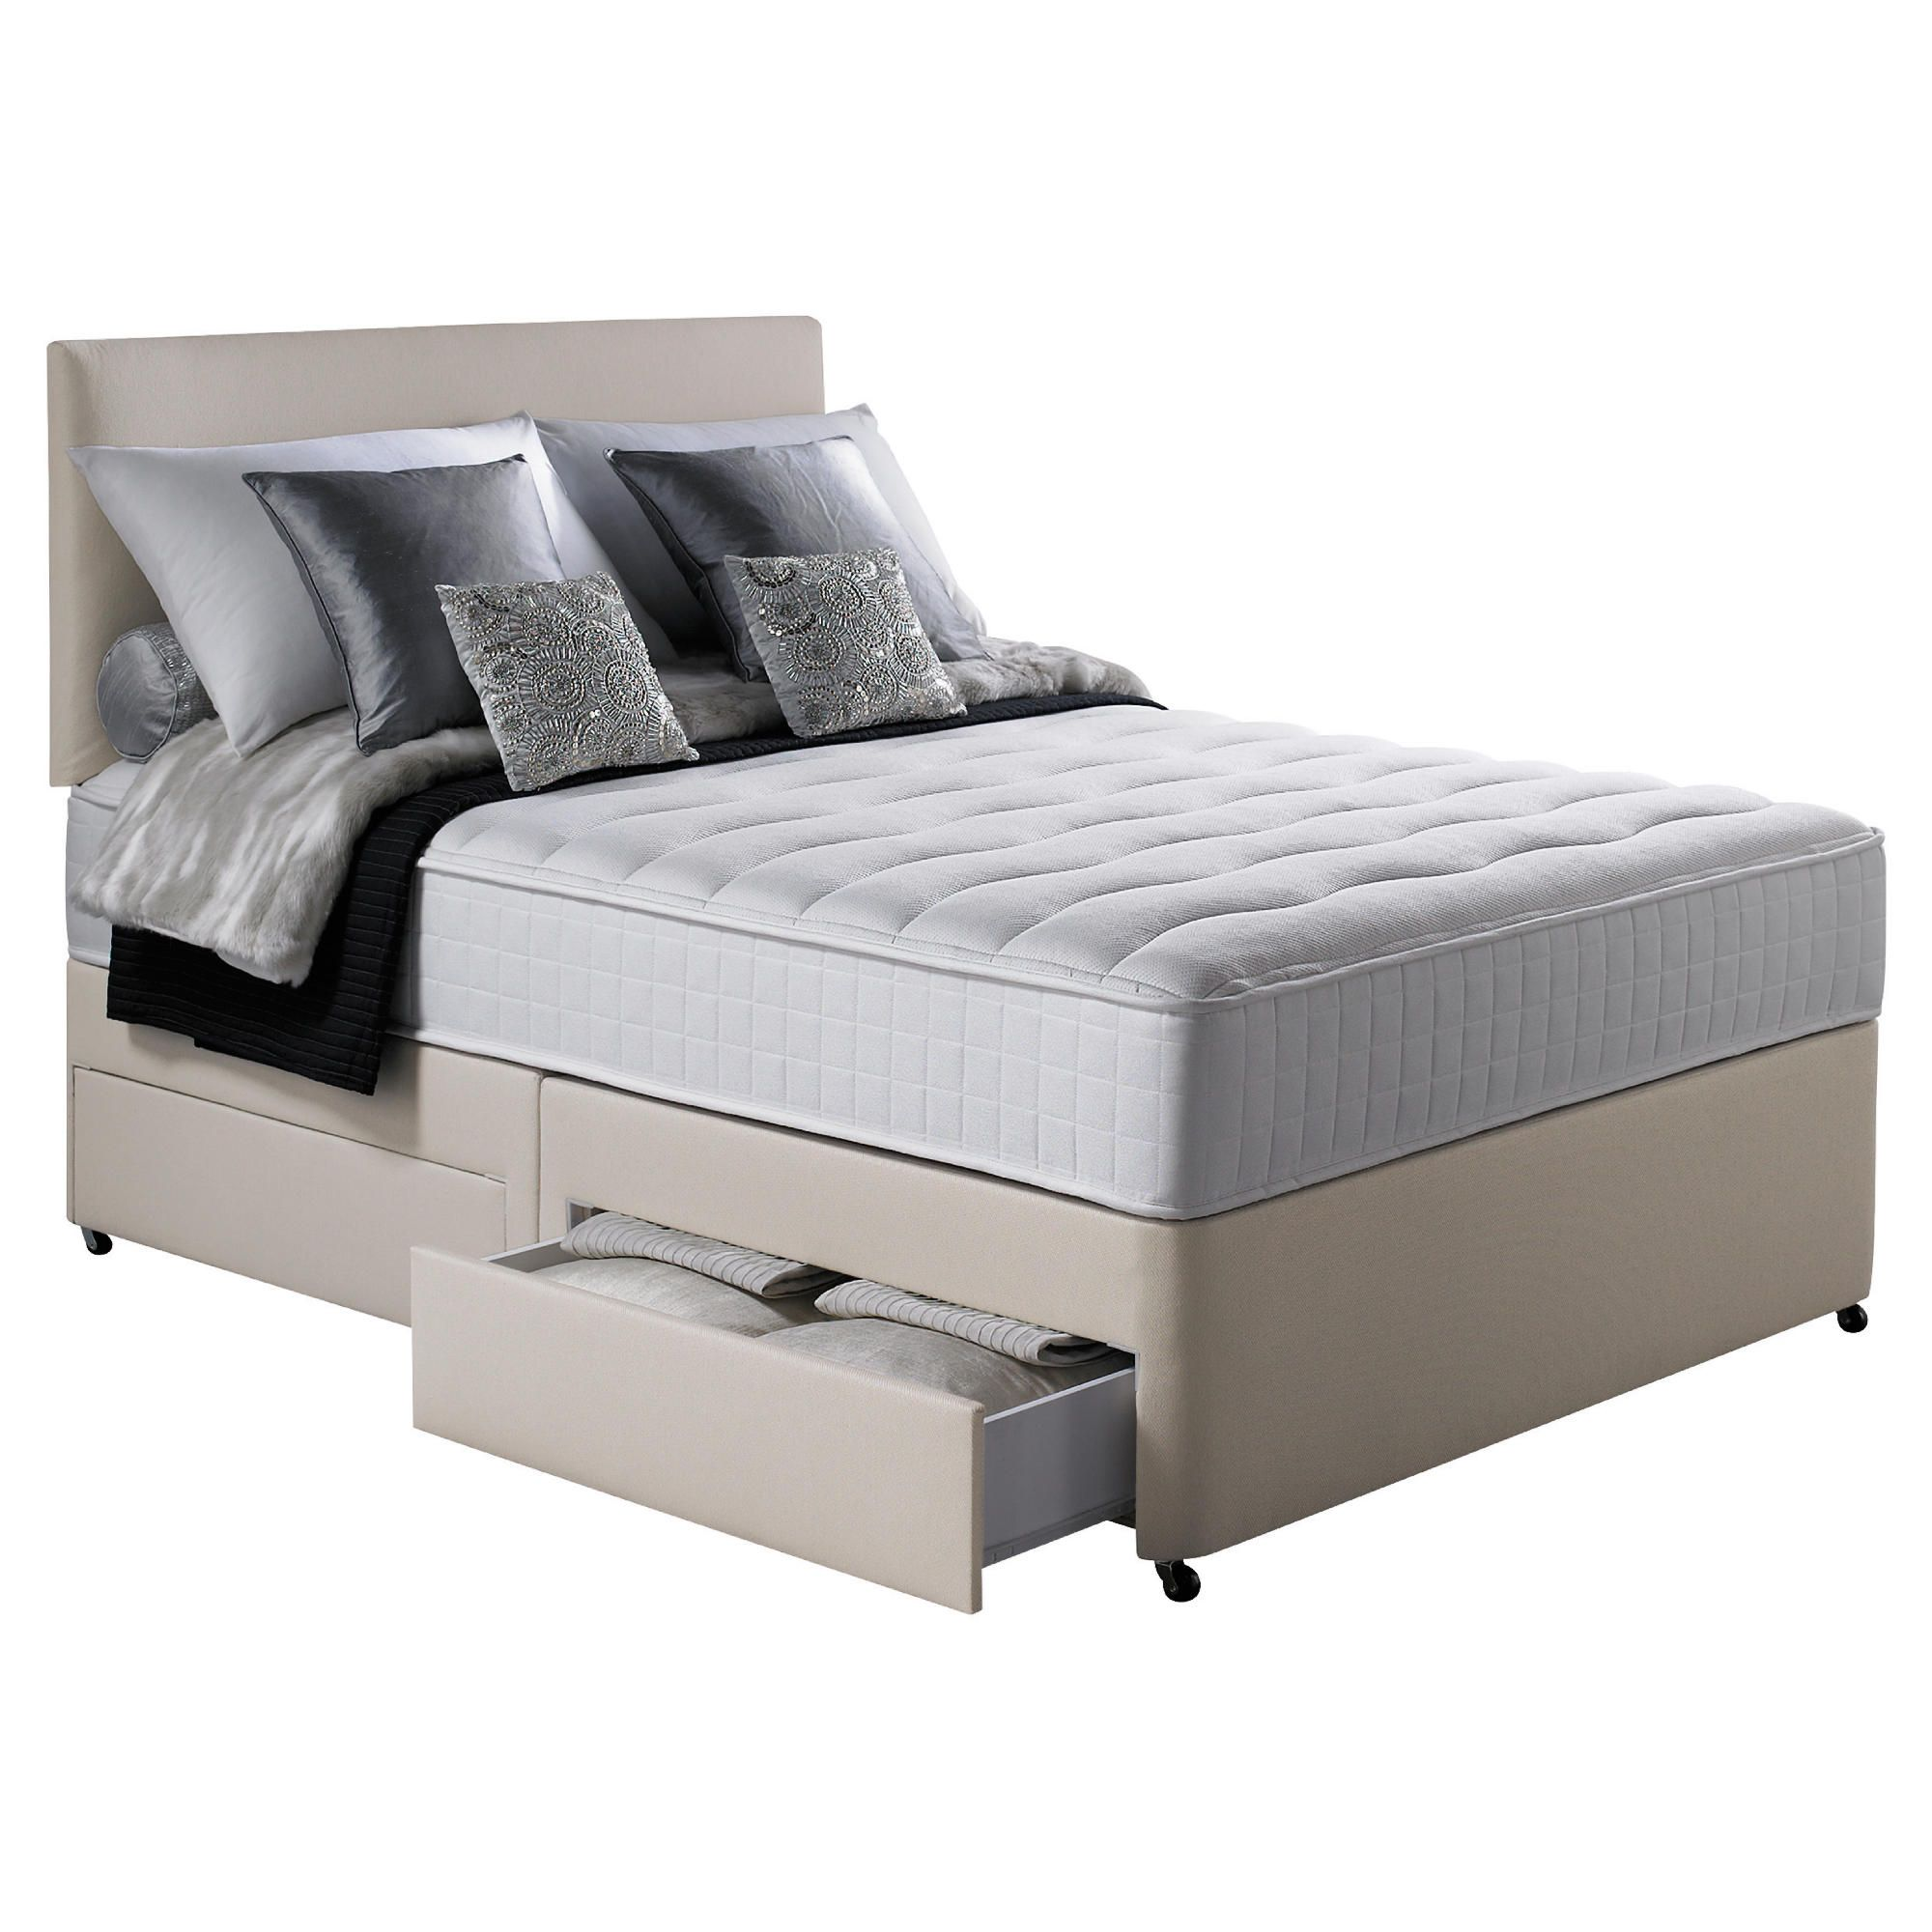 Home And Garden Bedroom Silentnight Impress Memory Foam Single Mattress Topper Special Offers